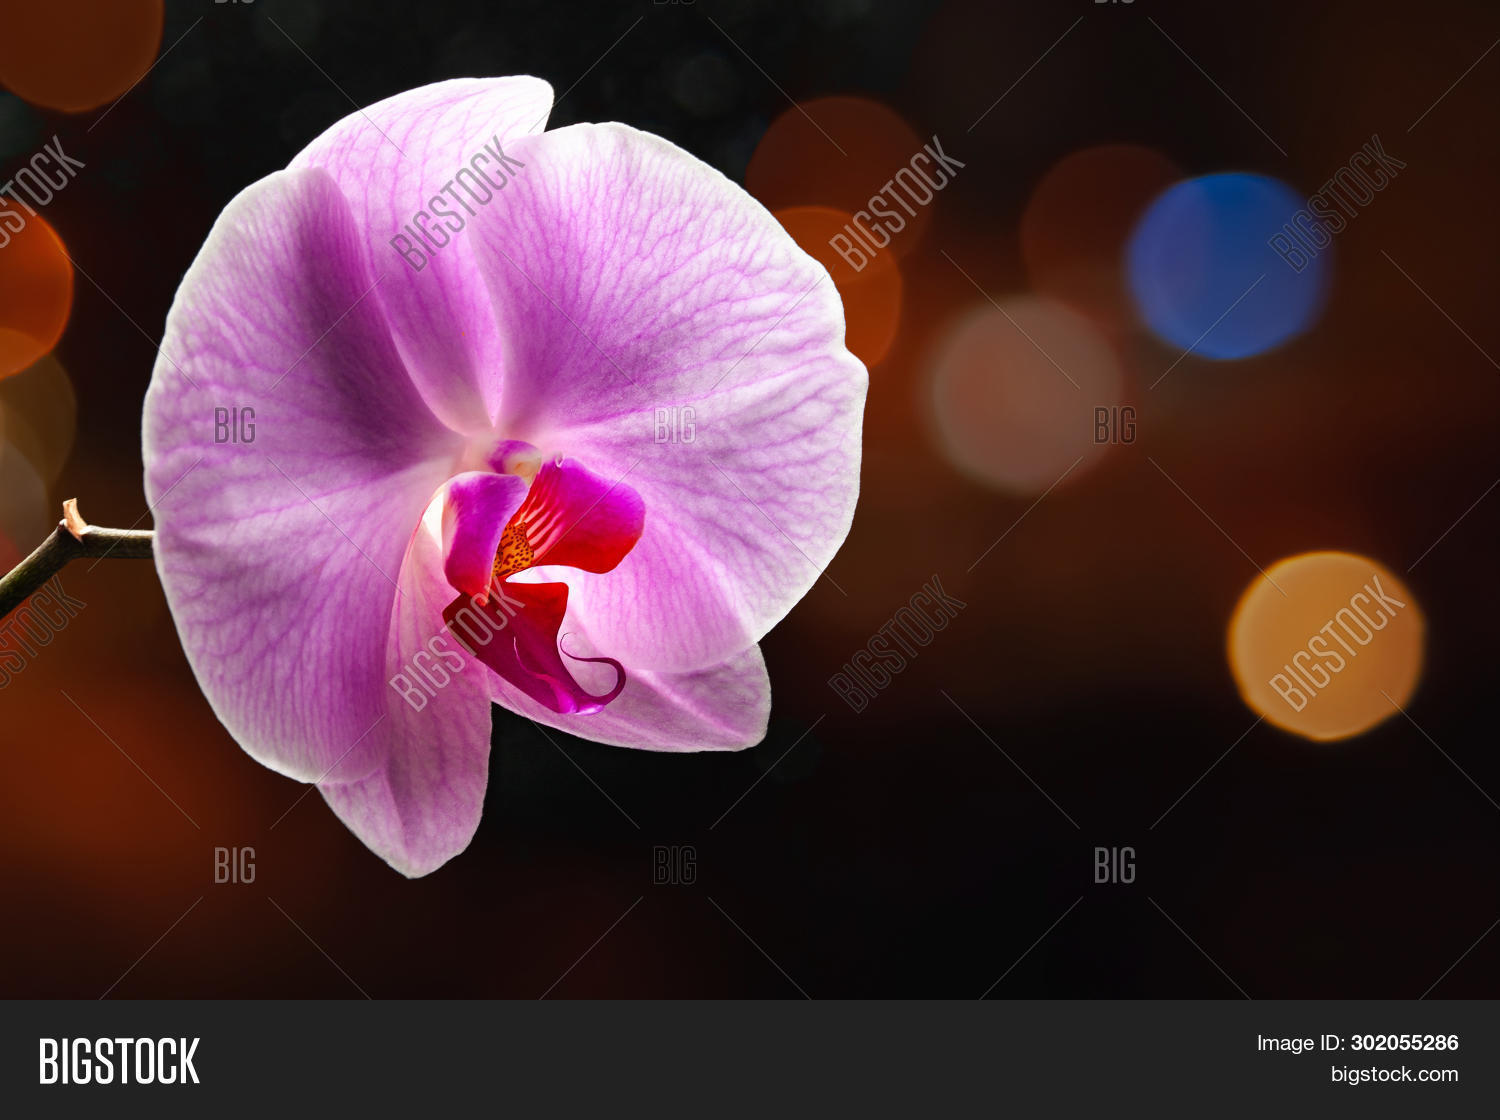 Purple Orchid Flower Image Photo Free Trial Bigstock